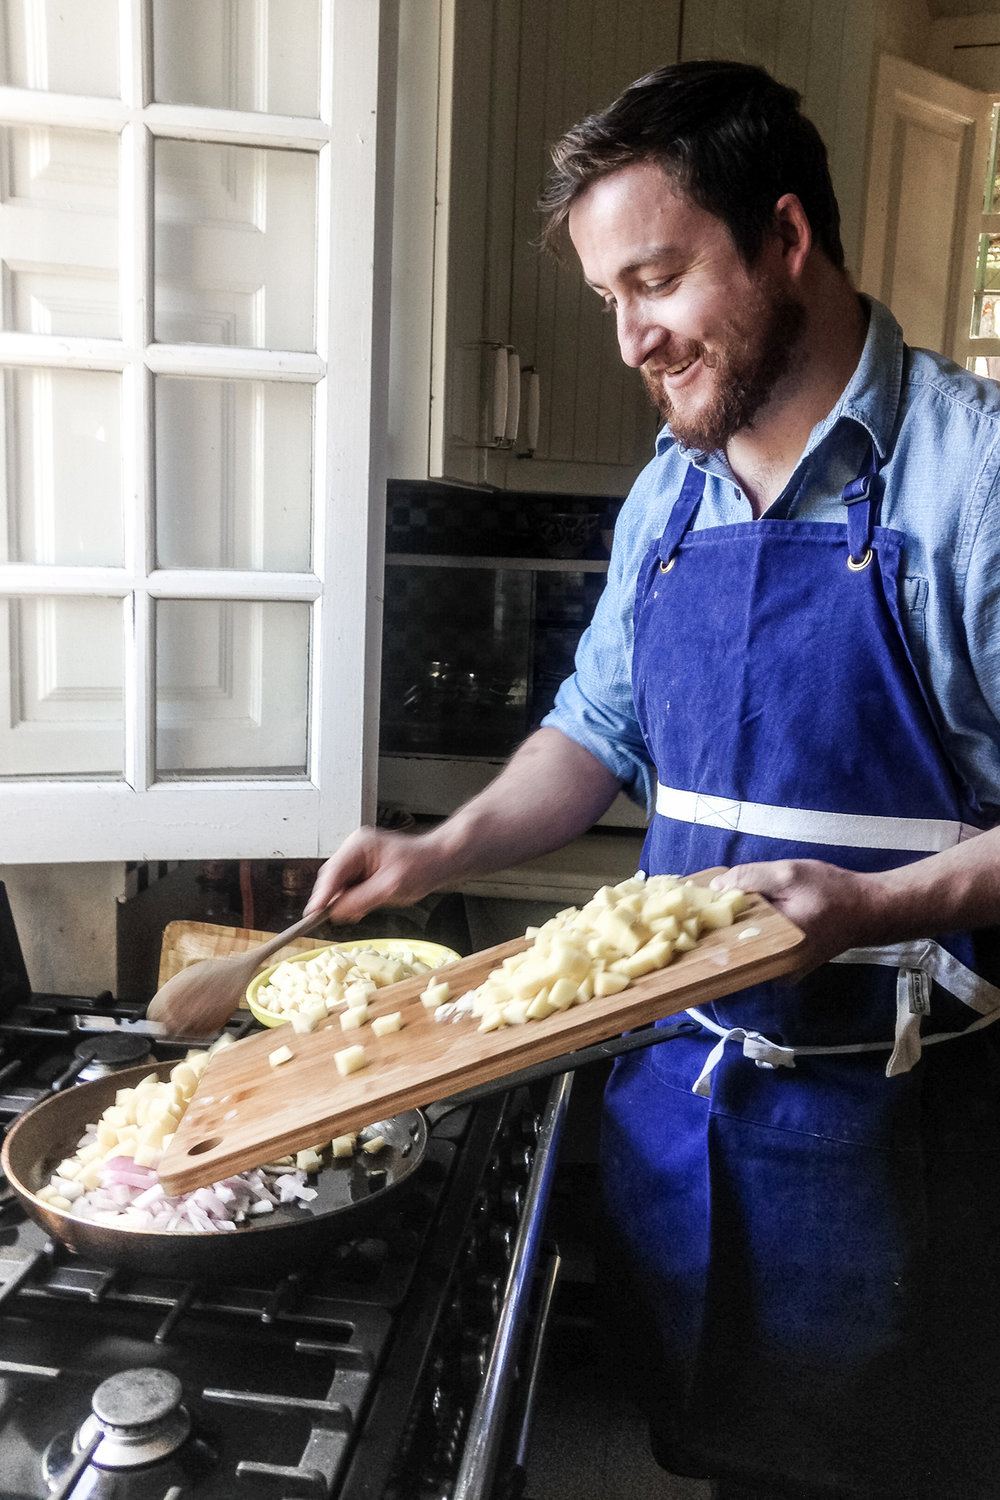 Charlie making Tortilla de Patatas.    Photo courtesy of Connie Eldrup       http://www.connieeldrup-conarte.dk